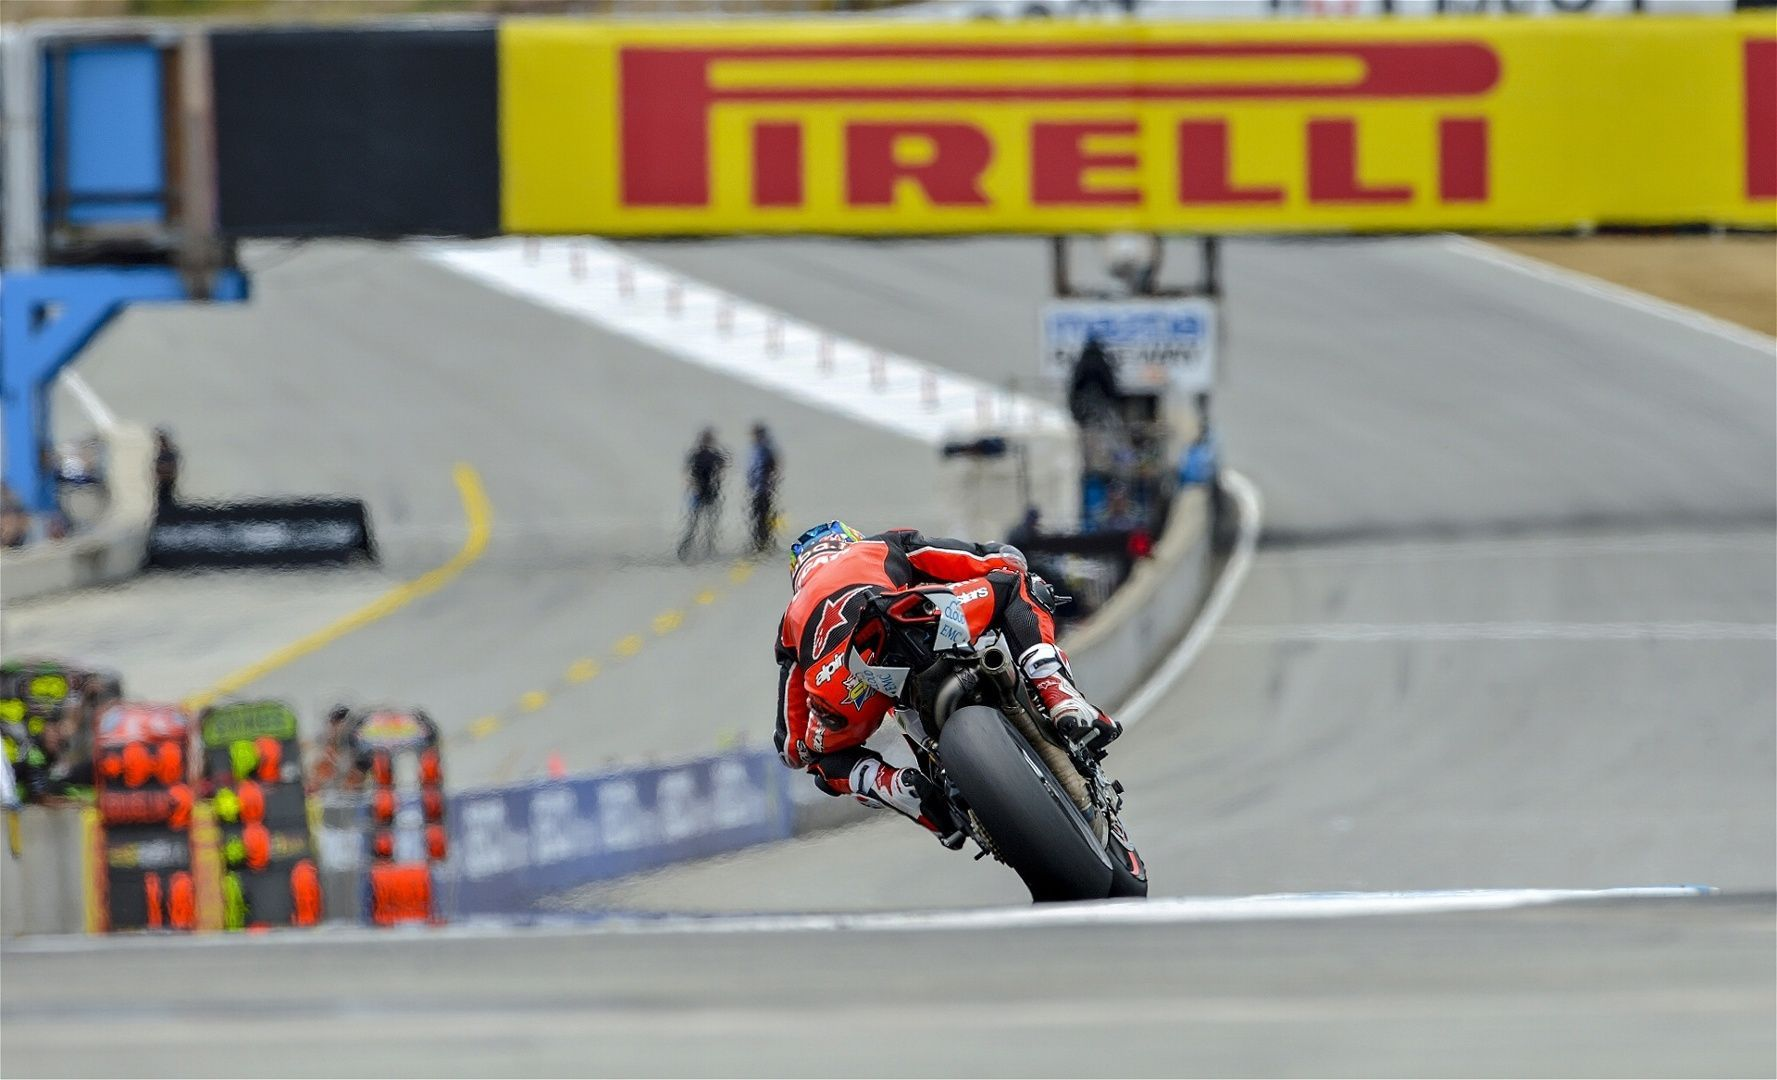 2015 Ducati Panigale R | Chaz steps on the gas at Laguna Seca